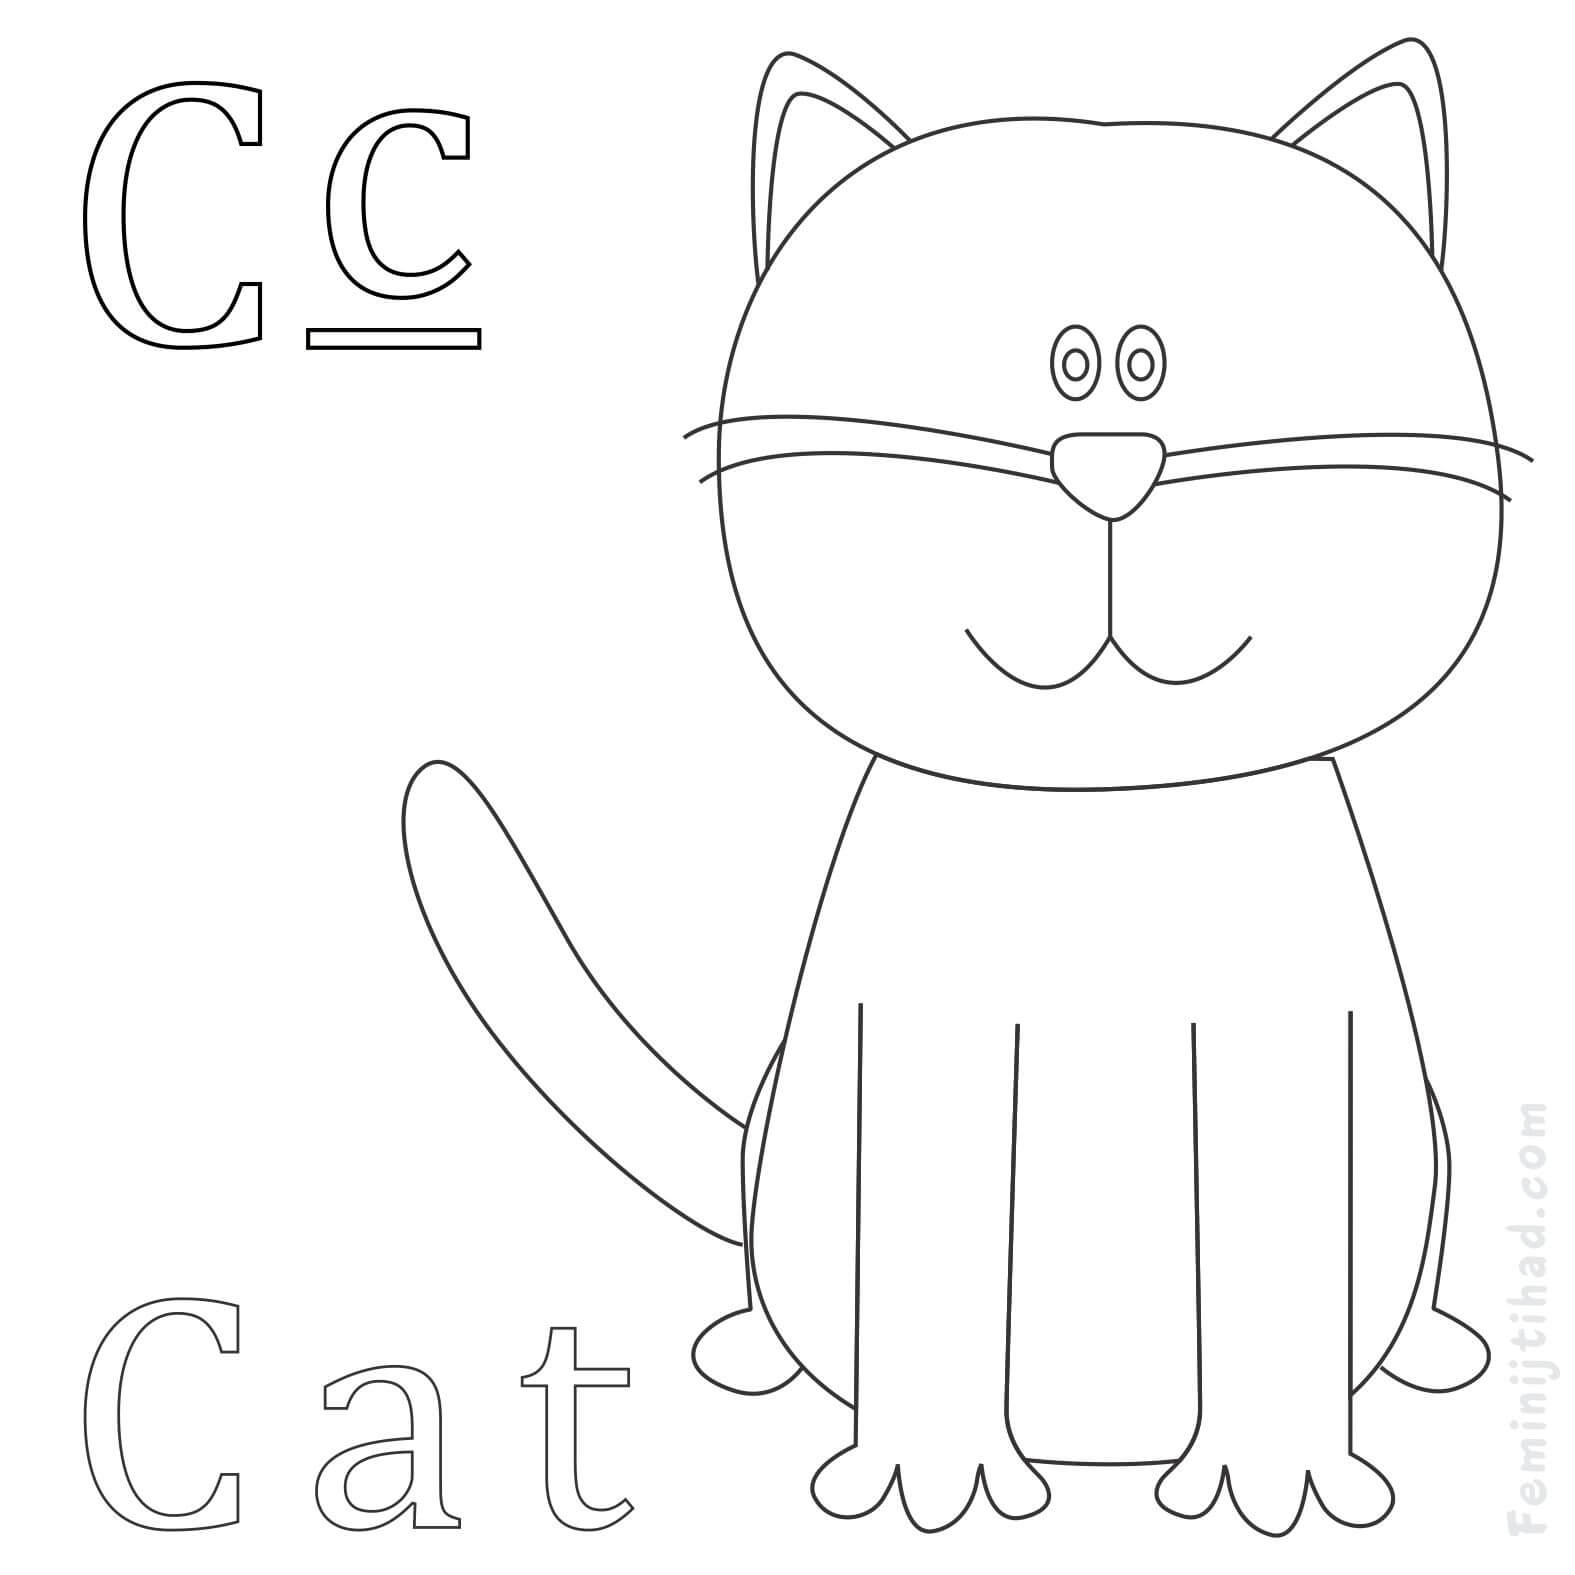 1575x1575 Cute Cat Coloring Pages Printable Coloring Pages For Kids